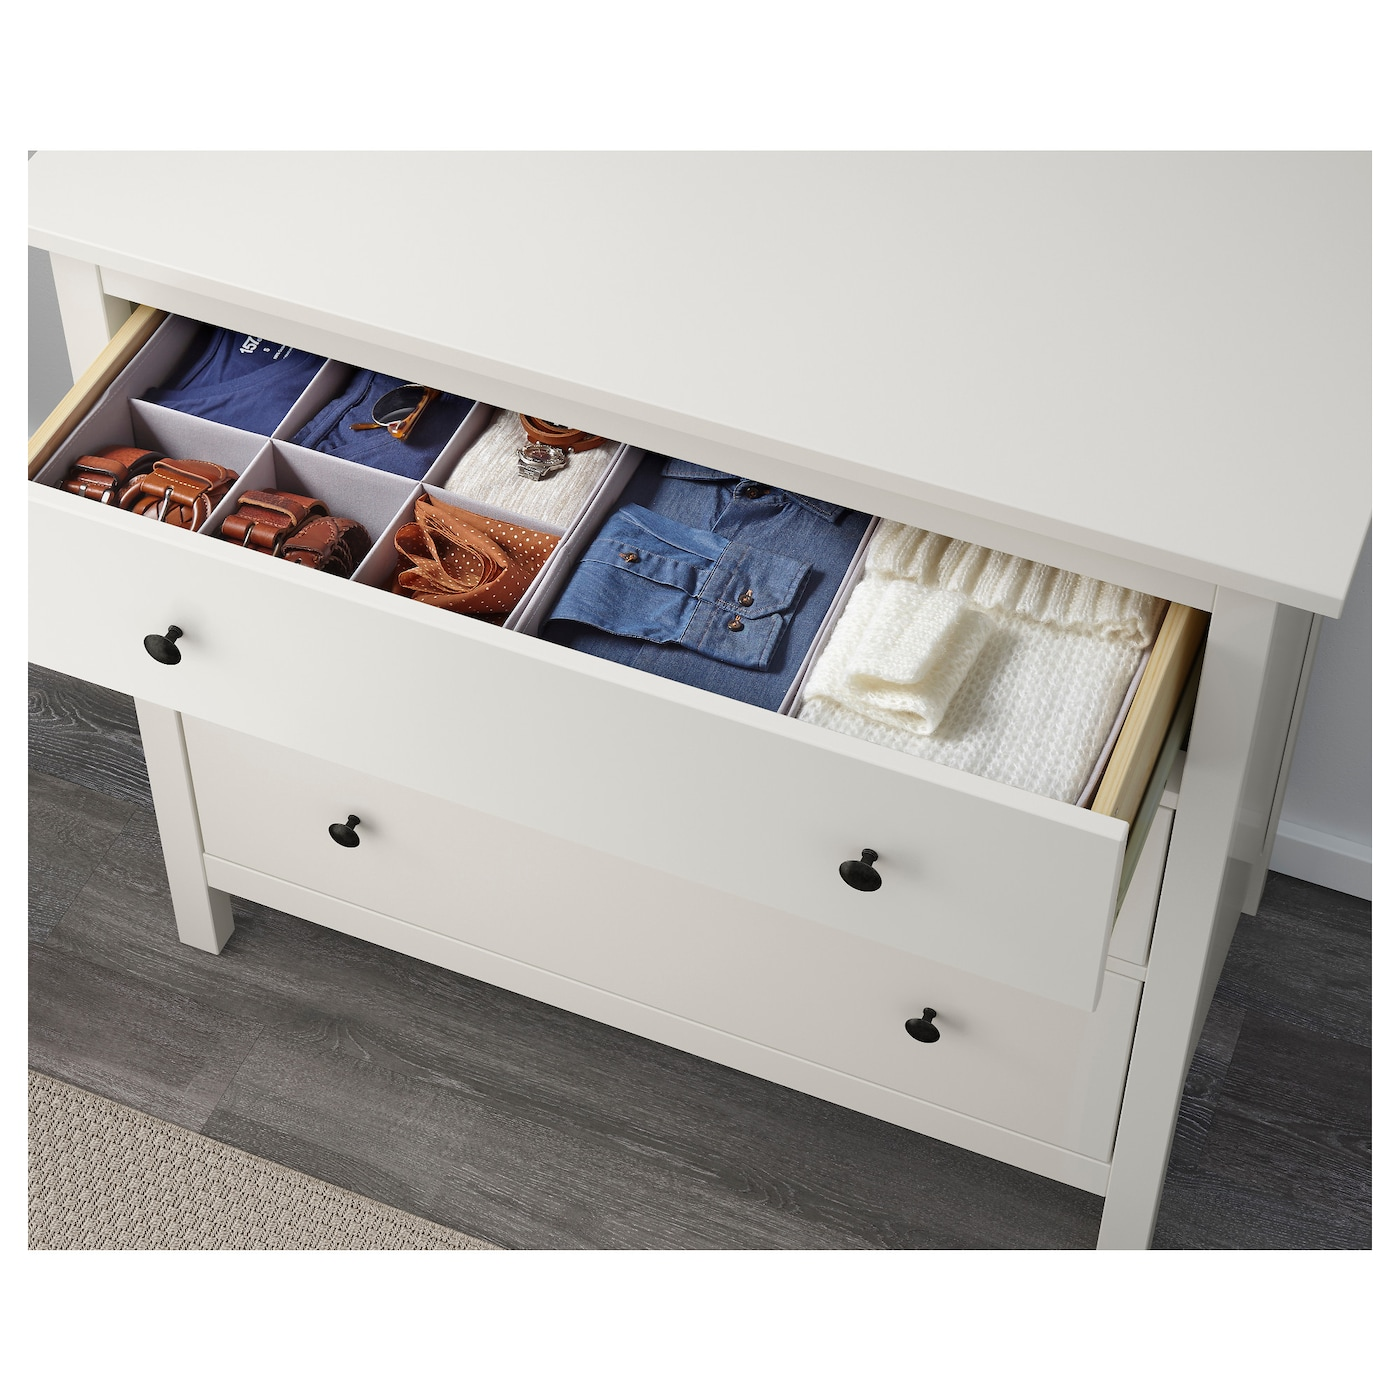 IKEA HEMNES chest of 3 drawers Smooth running drawers with pull-out stop.